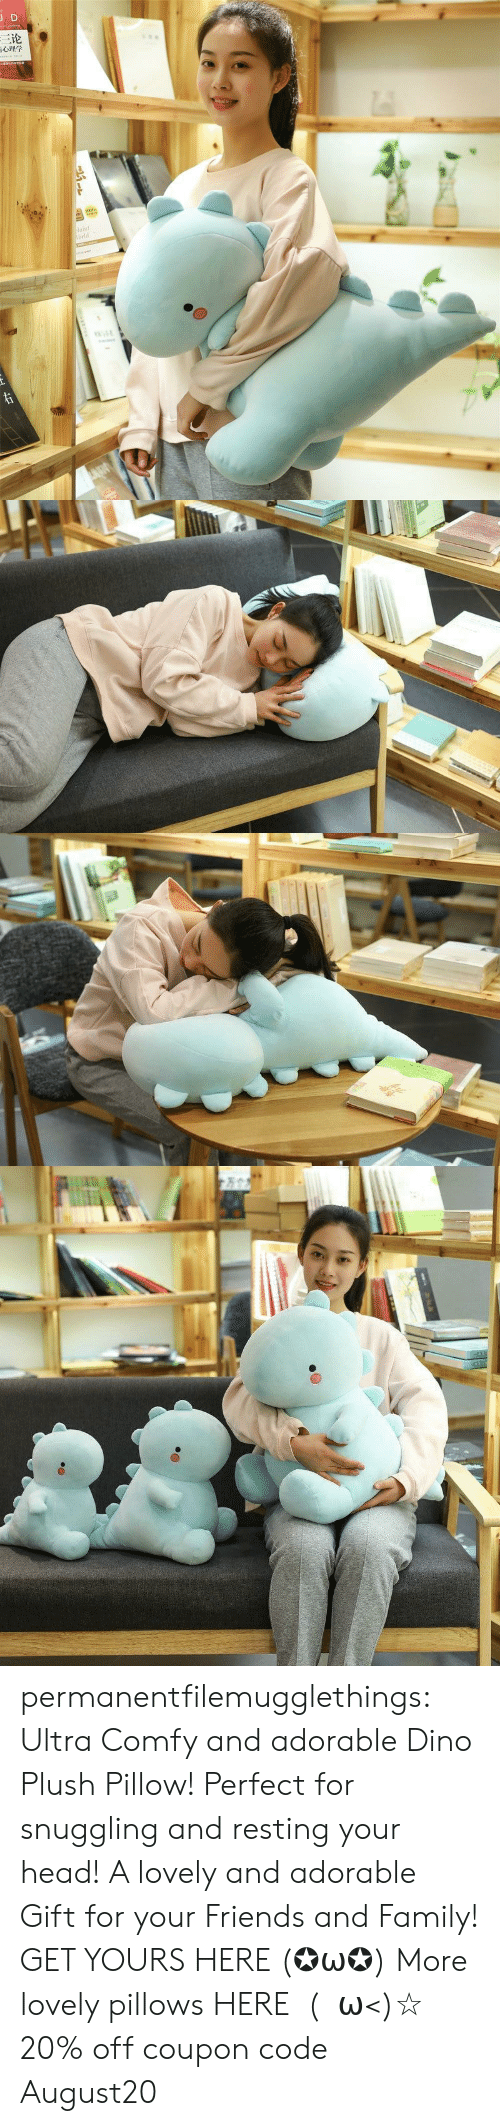 dino: JD  三论  laint  orld  TDNAR  ww.e permanentfilemugglethings:  Ultra Comfy and adorable Dino Plush Pillow! Perfect for snuggling and resting your head! A lovely and adorable Gift for your Friends and Family! GET YOURS HERE (✪ω✪) More lovely pillows HERE  (・ω<)☆ 20% off coupon code:August20